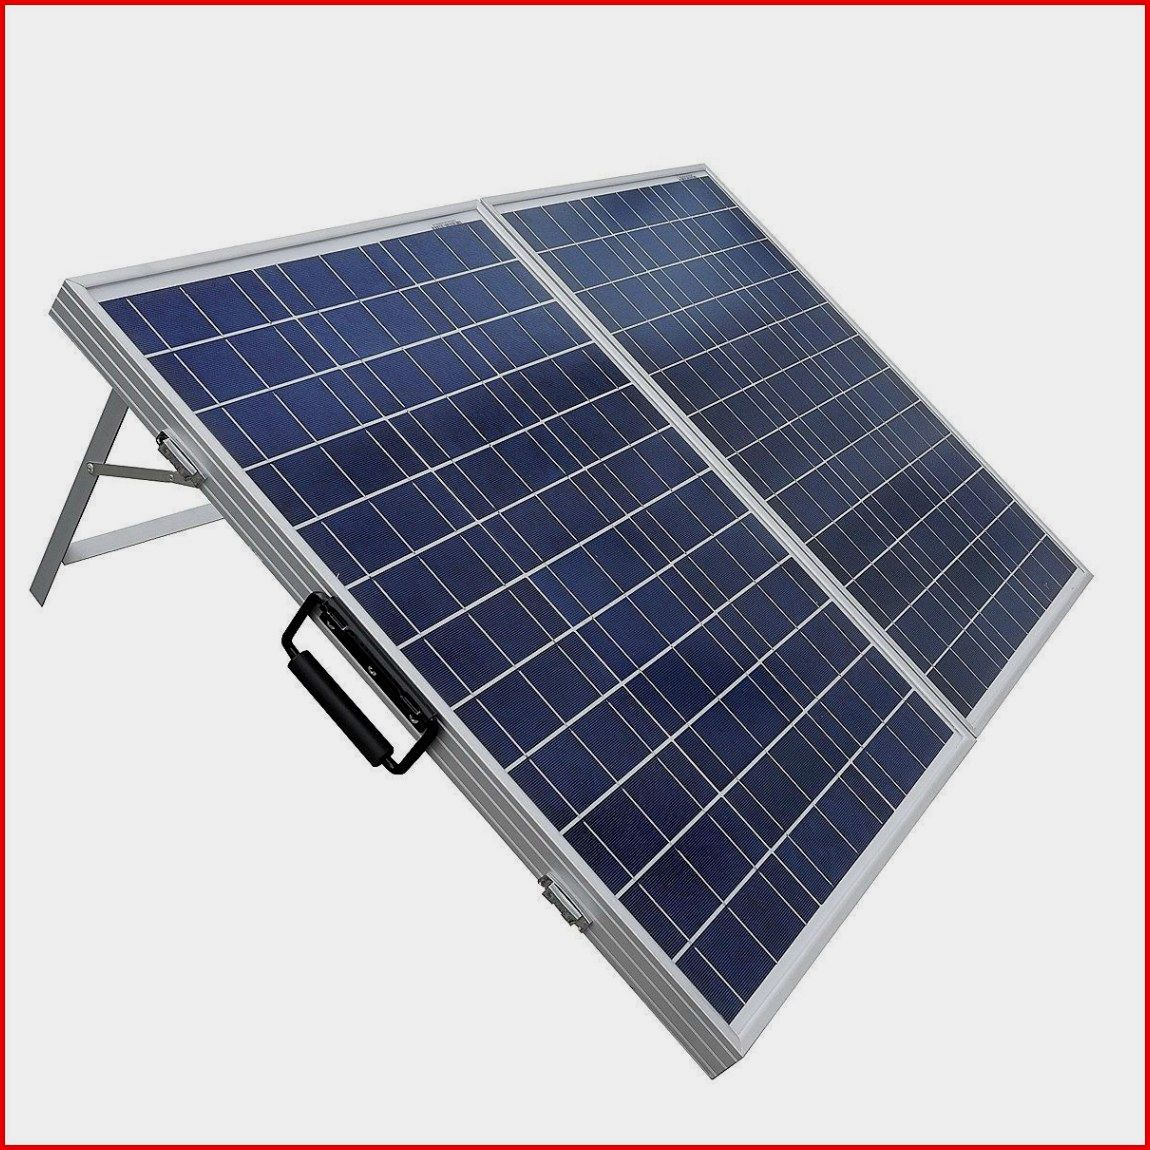 Green Energy And Climate Change Solar Energy 3d Model Making The Decision To Go Eco Friendly By Changin Solar Panels Best Solar Panels Solar Panels For Home